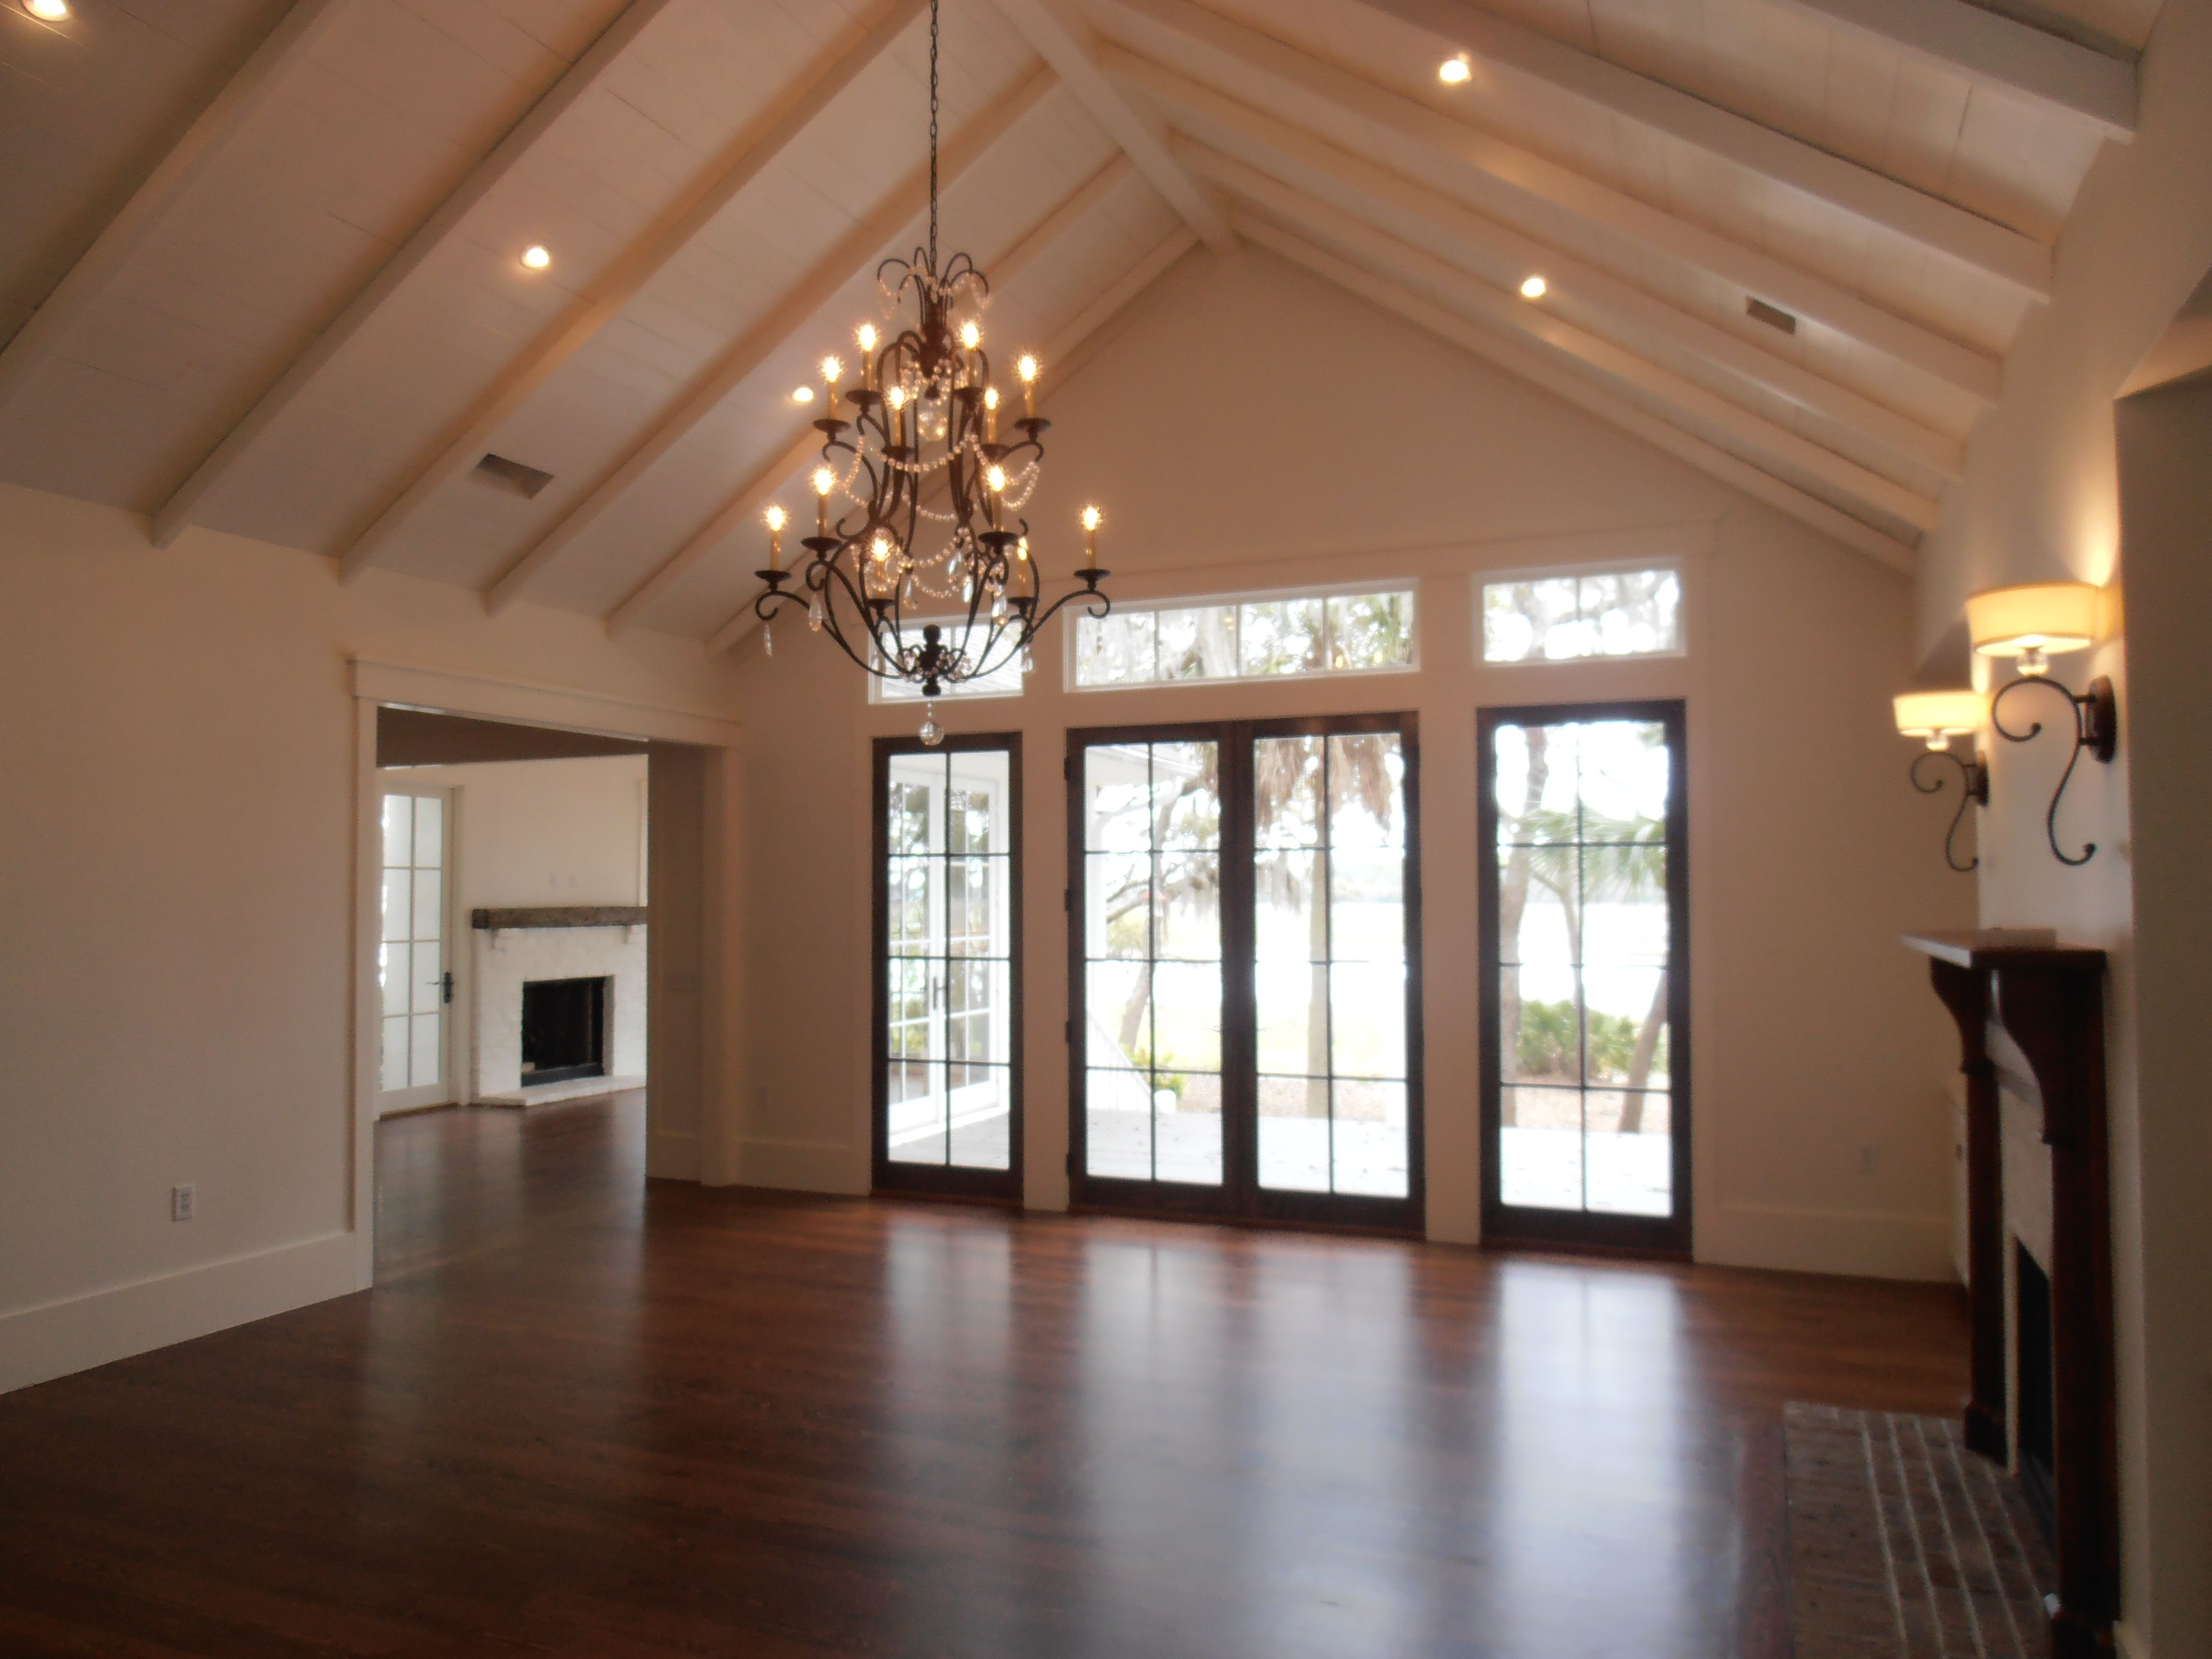 Buttboard ceiling treatment with beams, cathedral ceiling